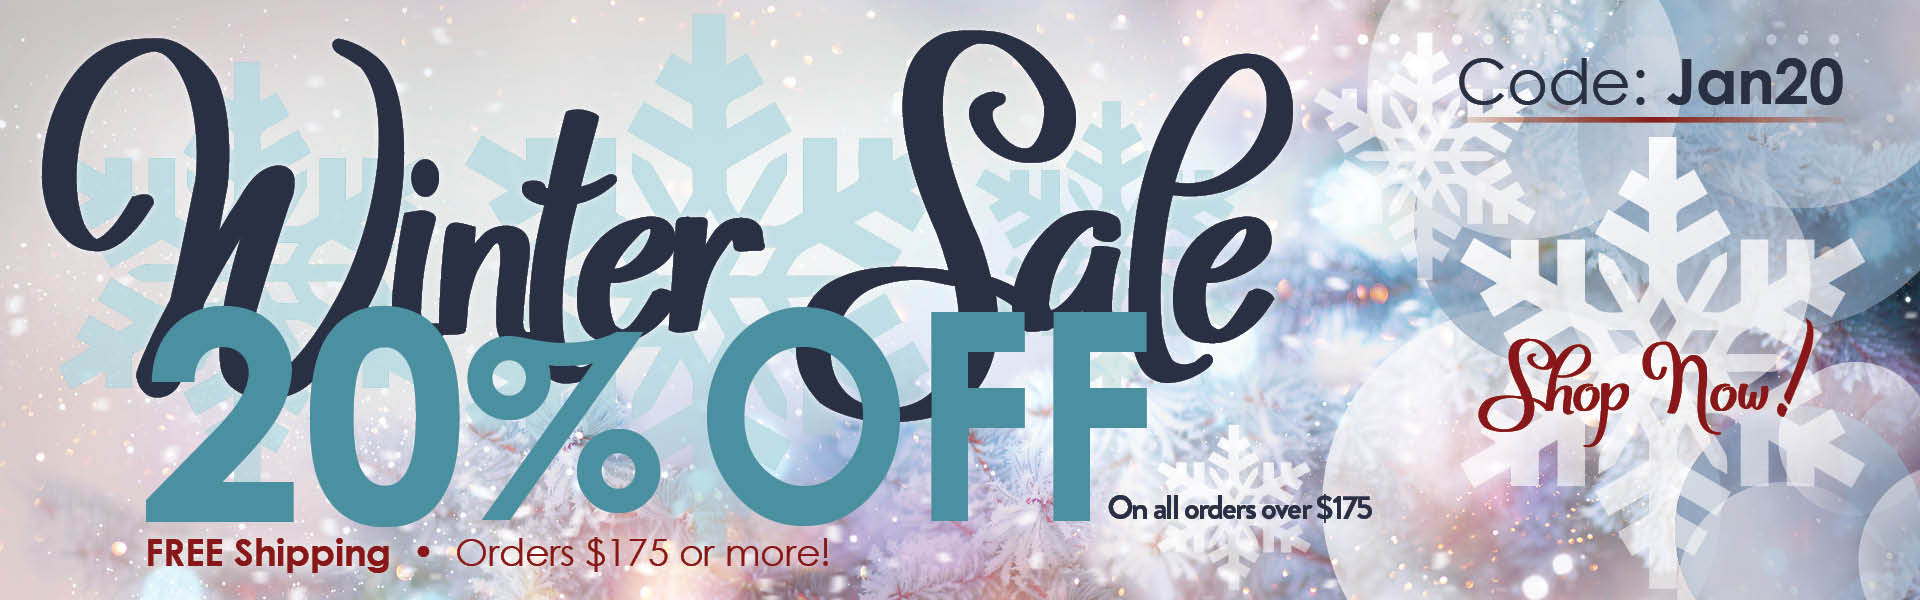 Winter Sale 20% Off on Orders. Free Shipping on Orders of $175 or More